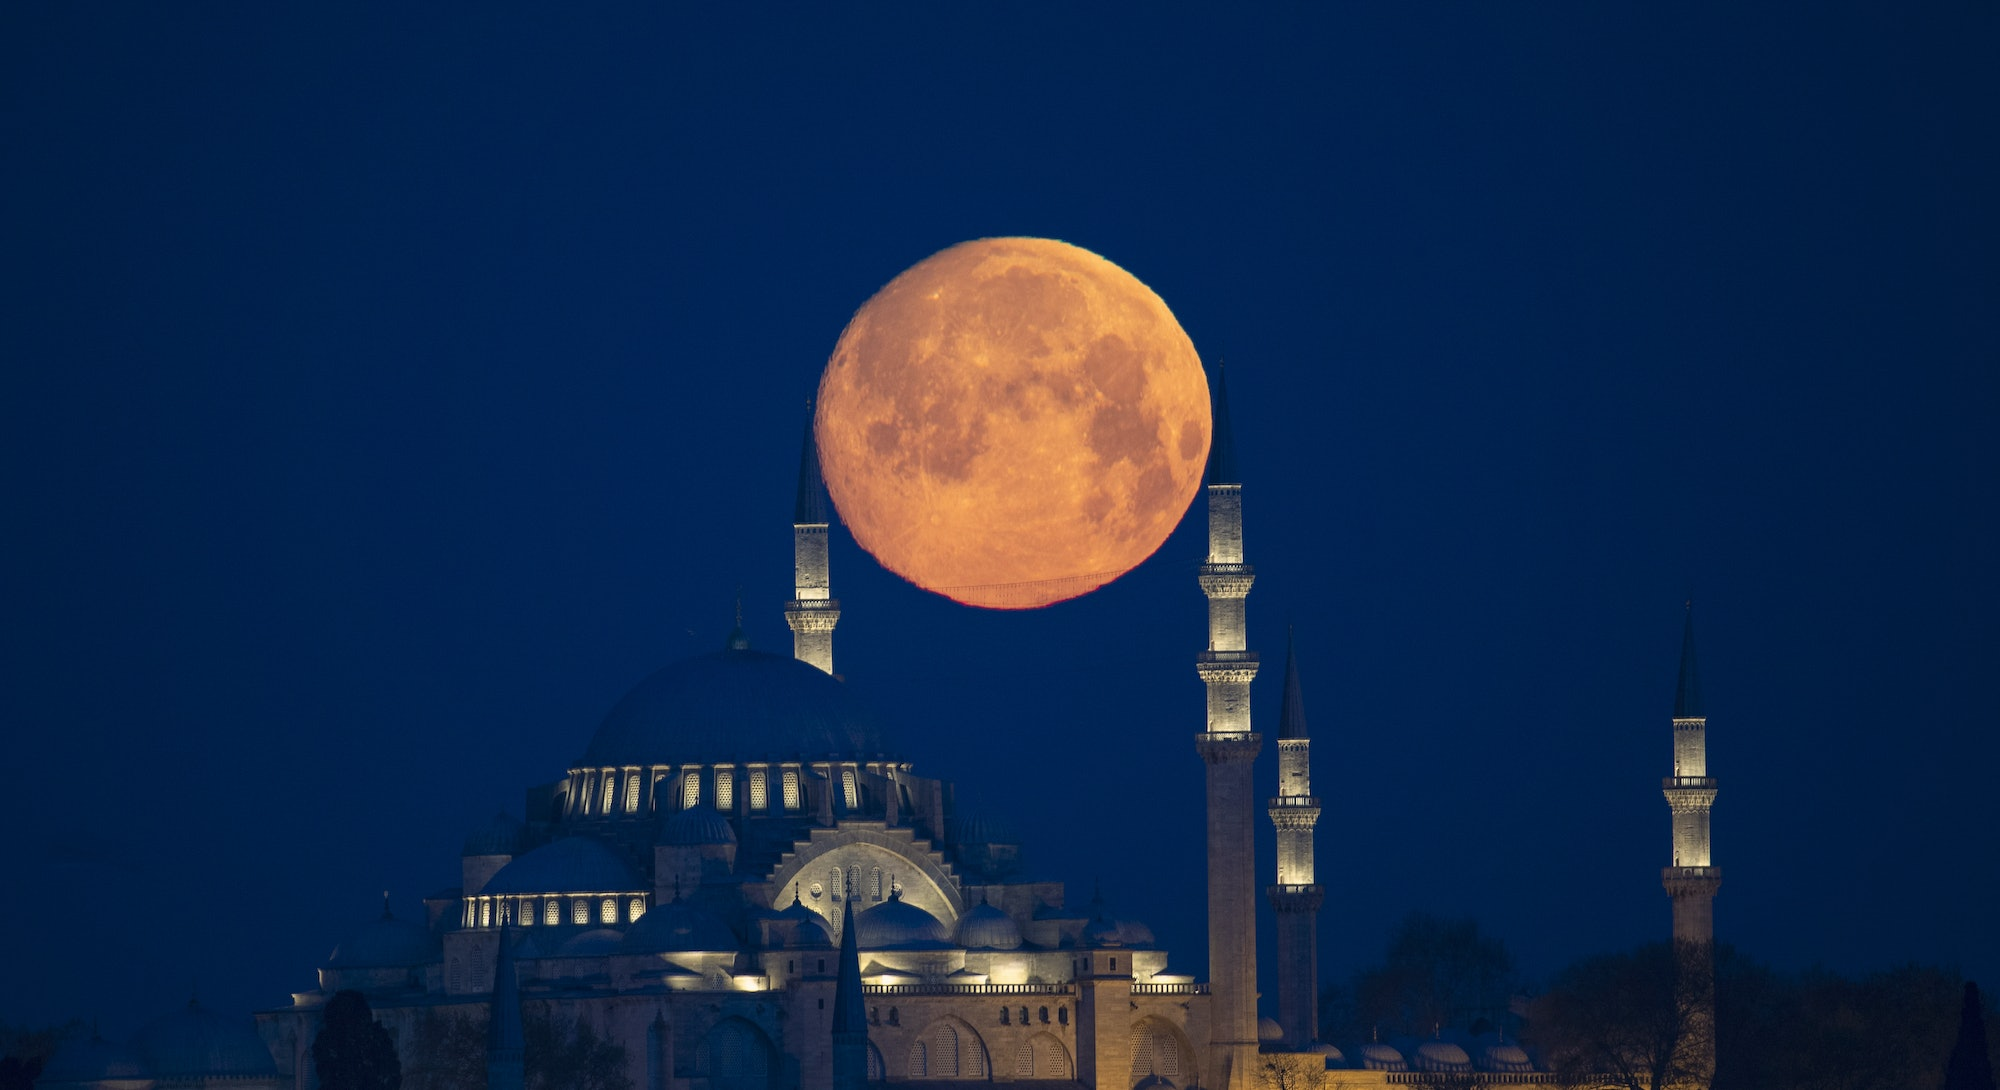 ISTANBUL, TURKEY - APRIL 26: Full moon rises over the Suleymaniye Mosque during the holy Islamic fasting month of Ramadan in Istanbul, Turkey on April 26, 2021. (Photo by Isa Terli/Anadolu Agency via Getty Images)